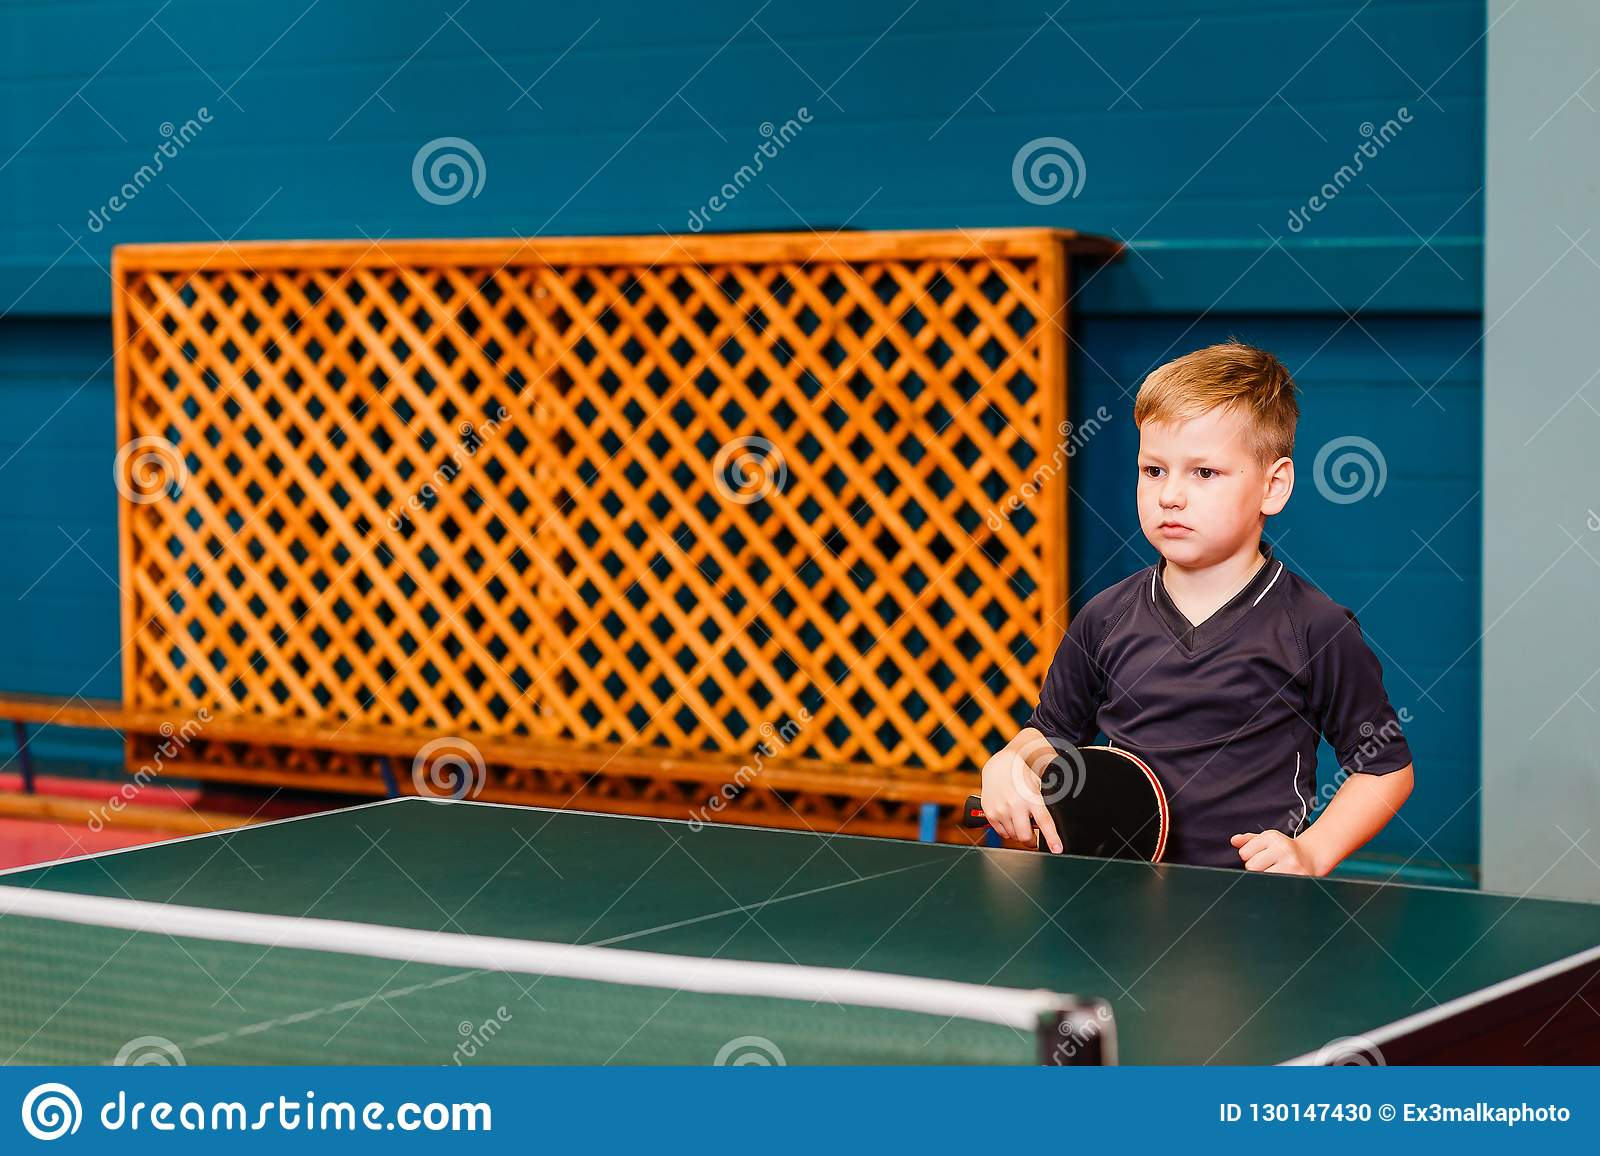 A child stands near the tennis racket with hands